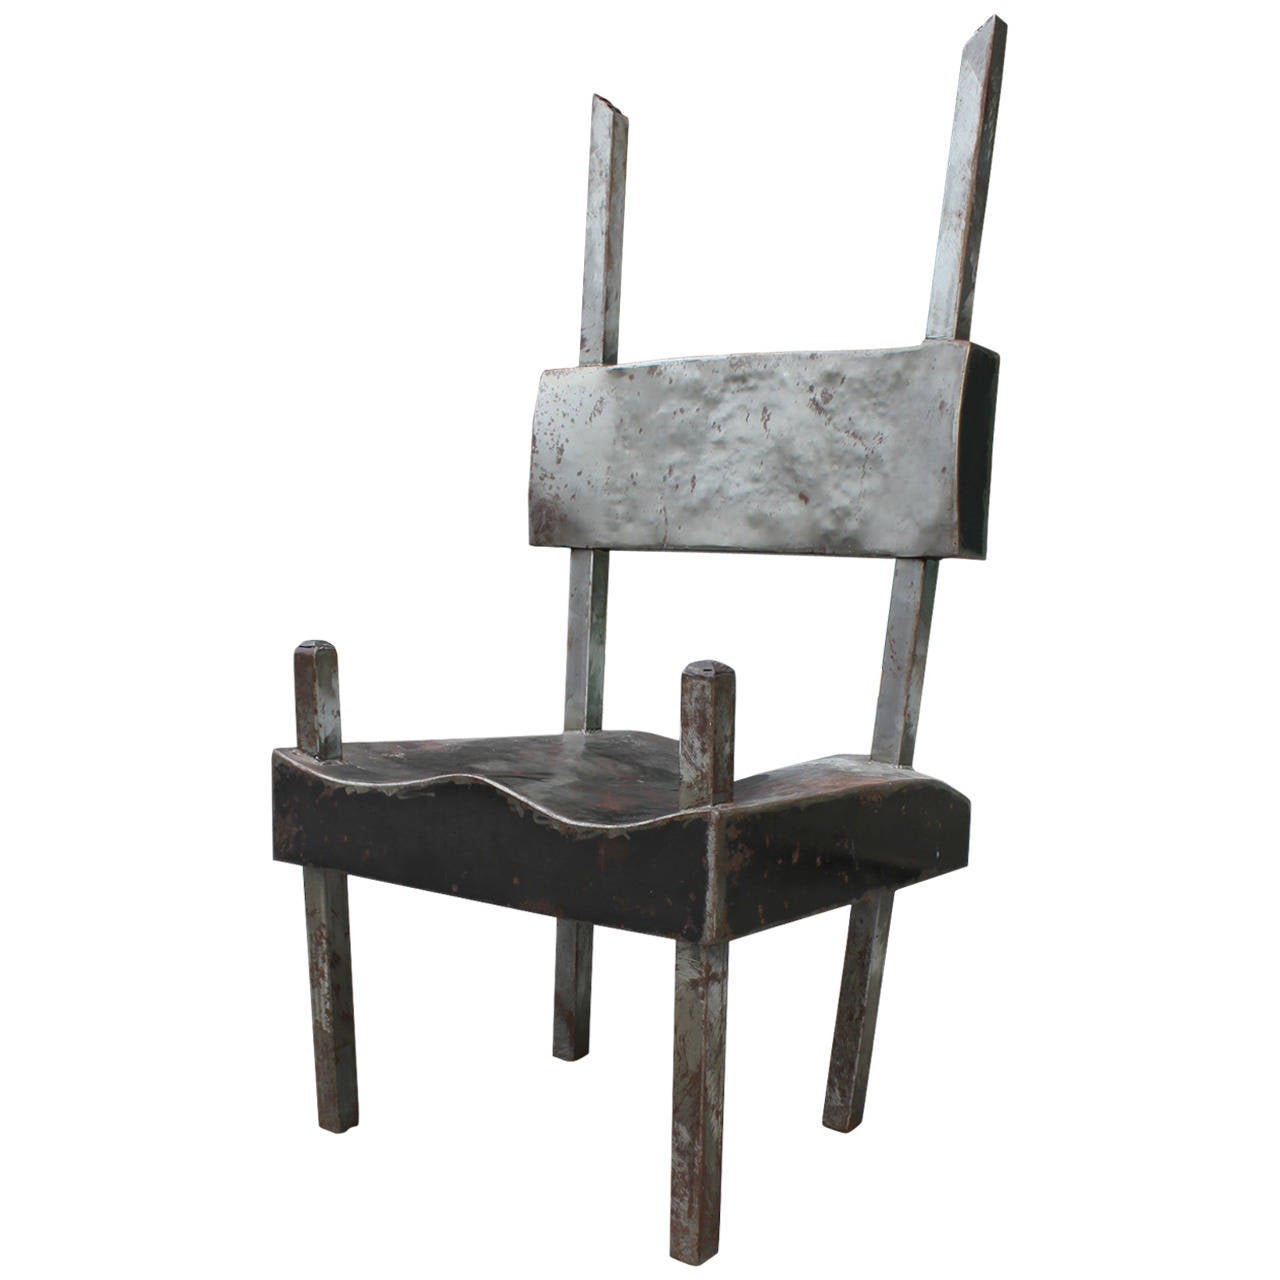 Interesting Modern Metal Lounge Chair by Houston Artist Ed Wilson For Sale at